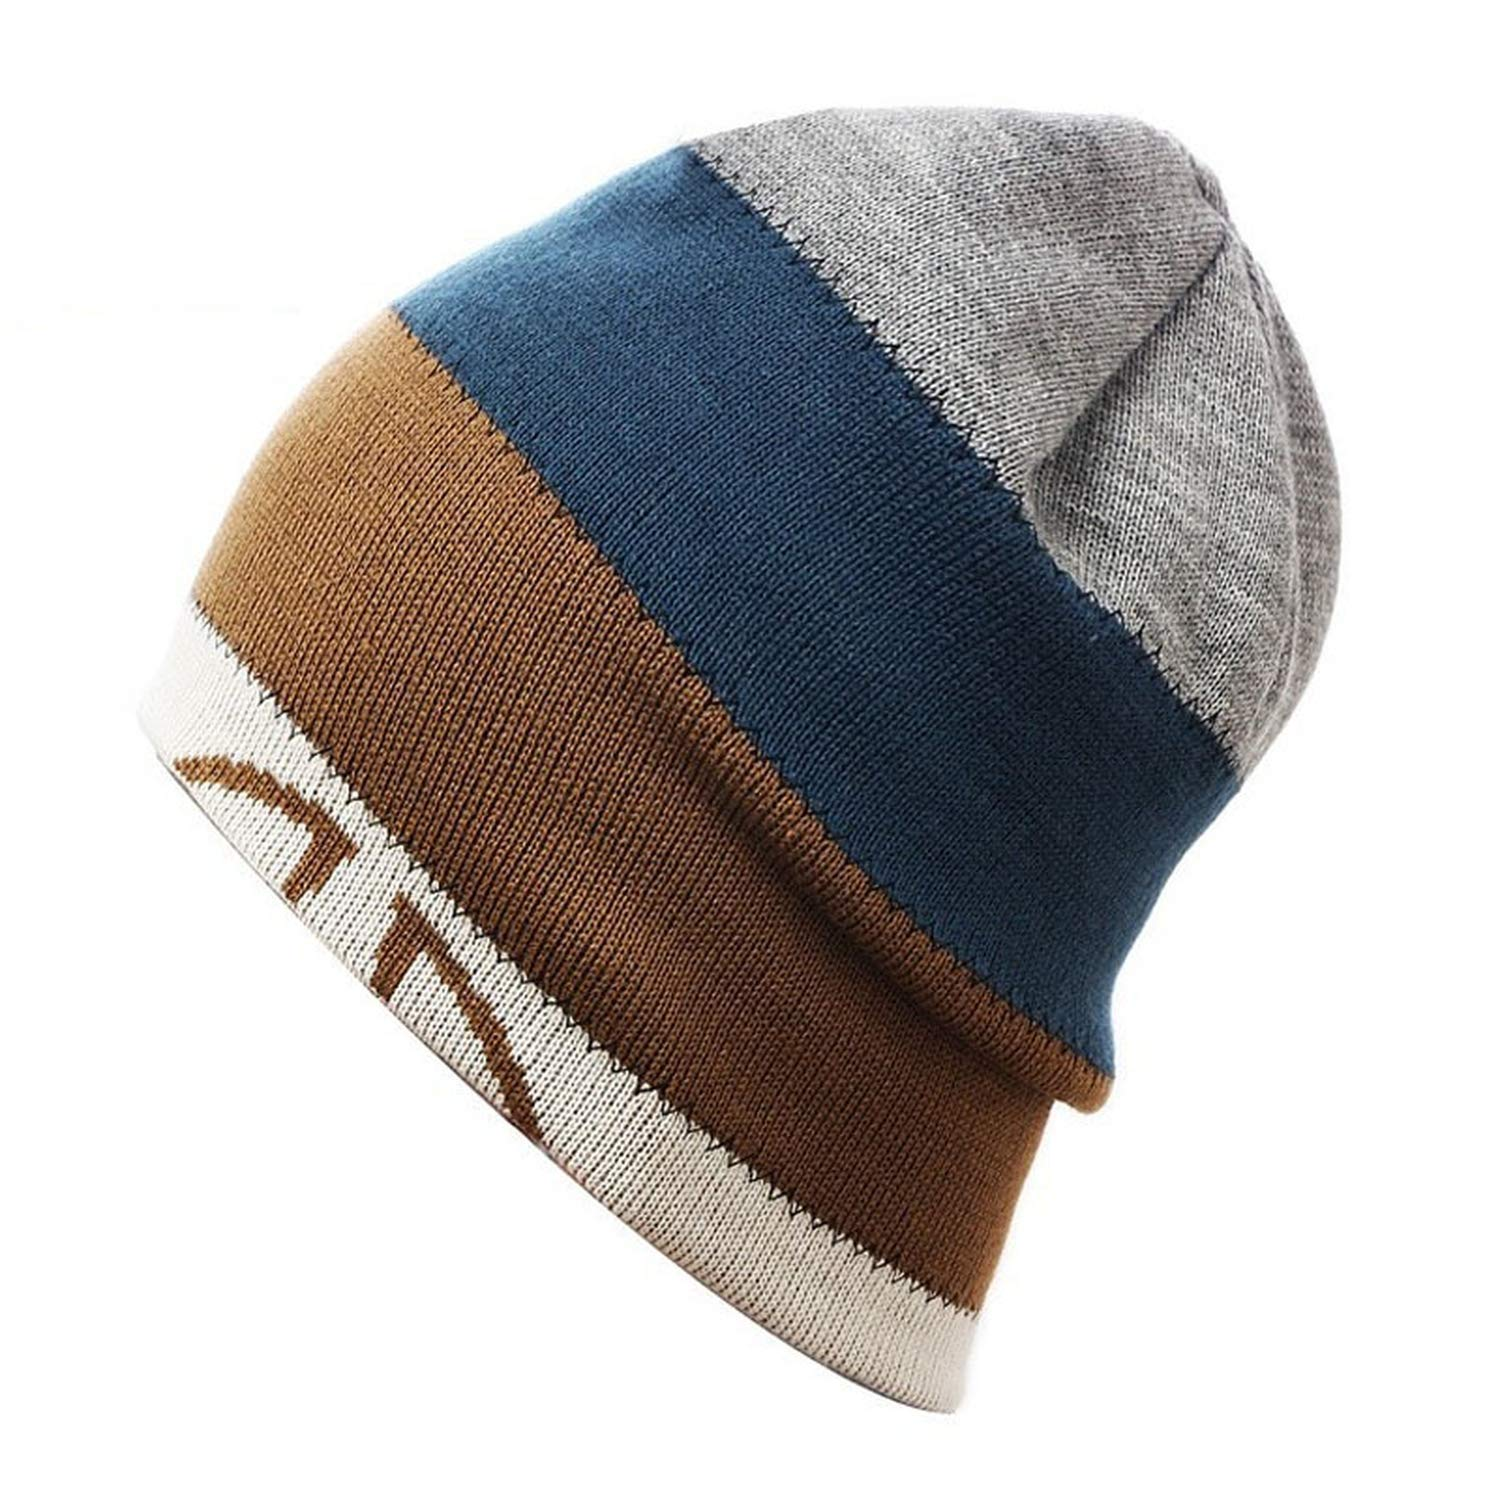 MEIZOKEN Unisex Winter Knitted Men Women Hats Skullies and Beanies Wire Caps Thermal Ski Hat Double-Sided Cap